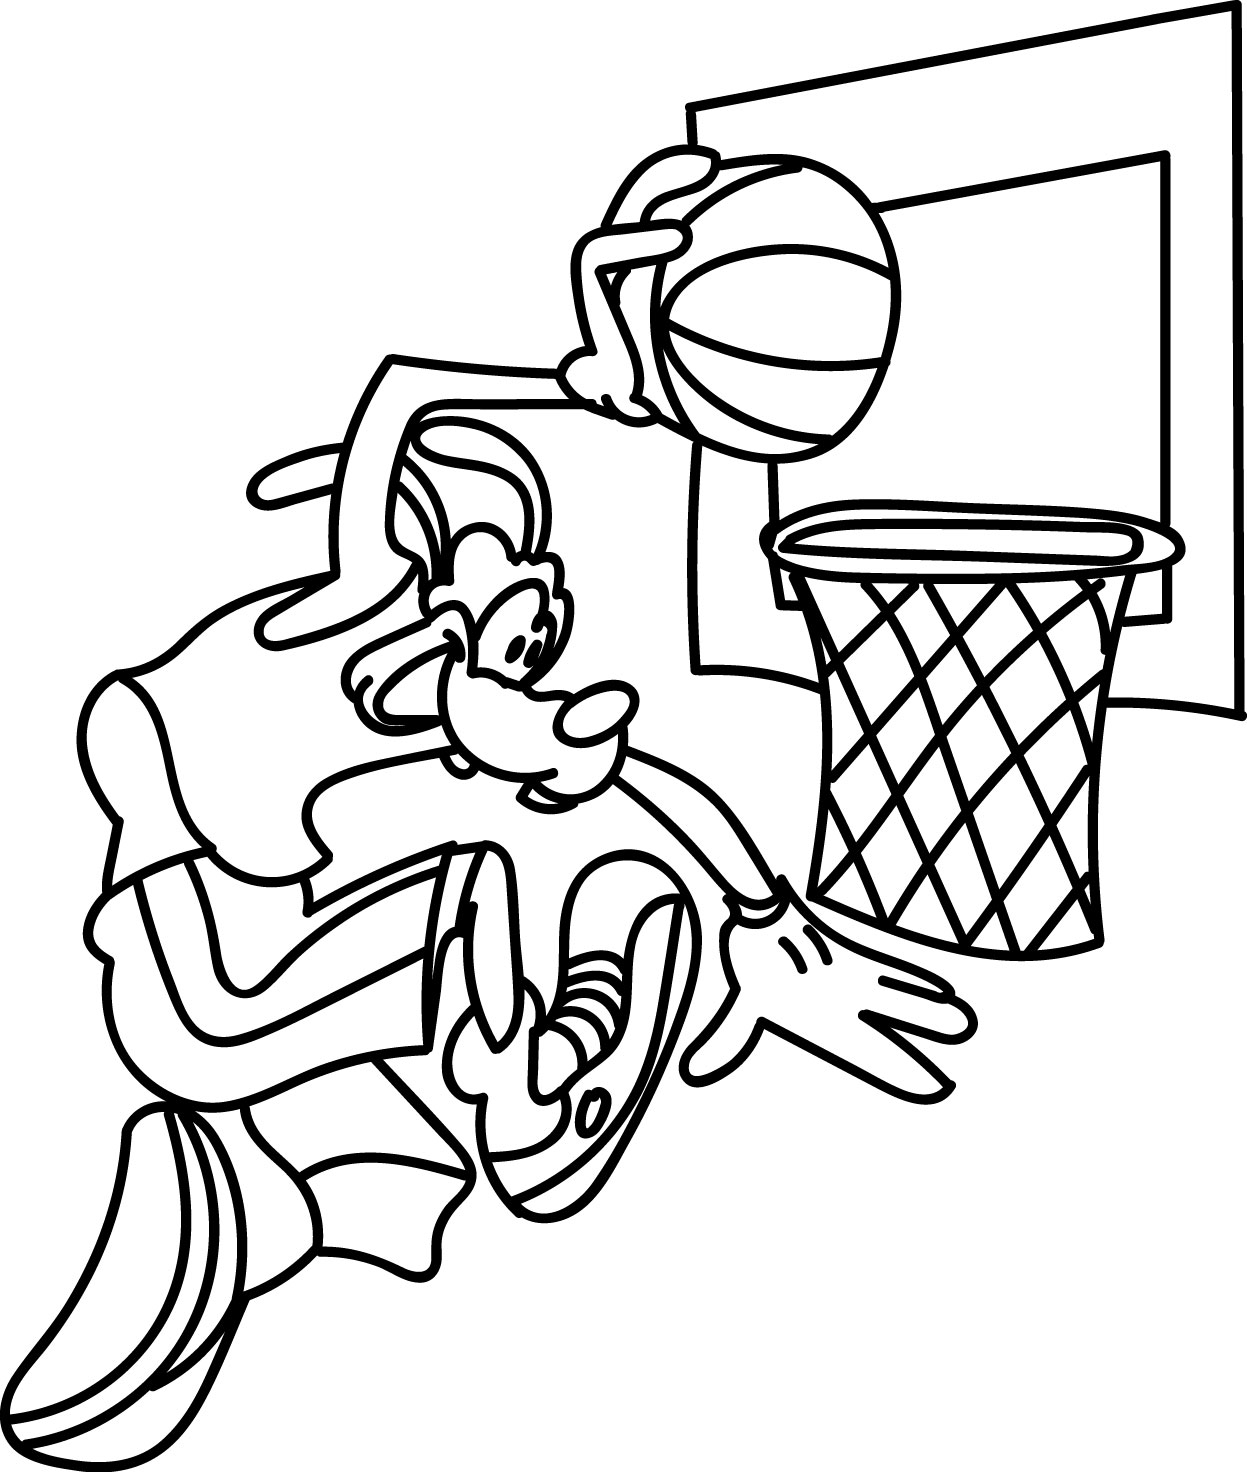 goofy playing shot basketball coloring pages